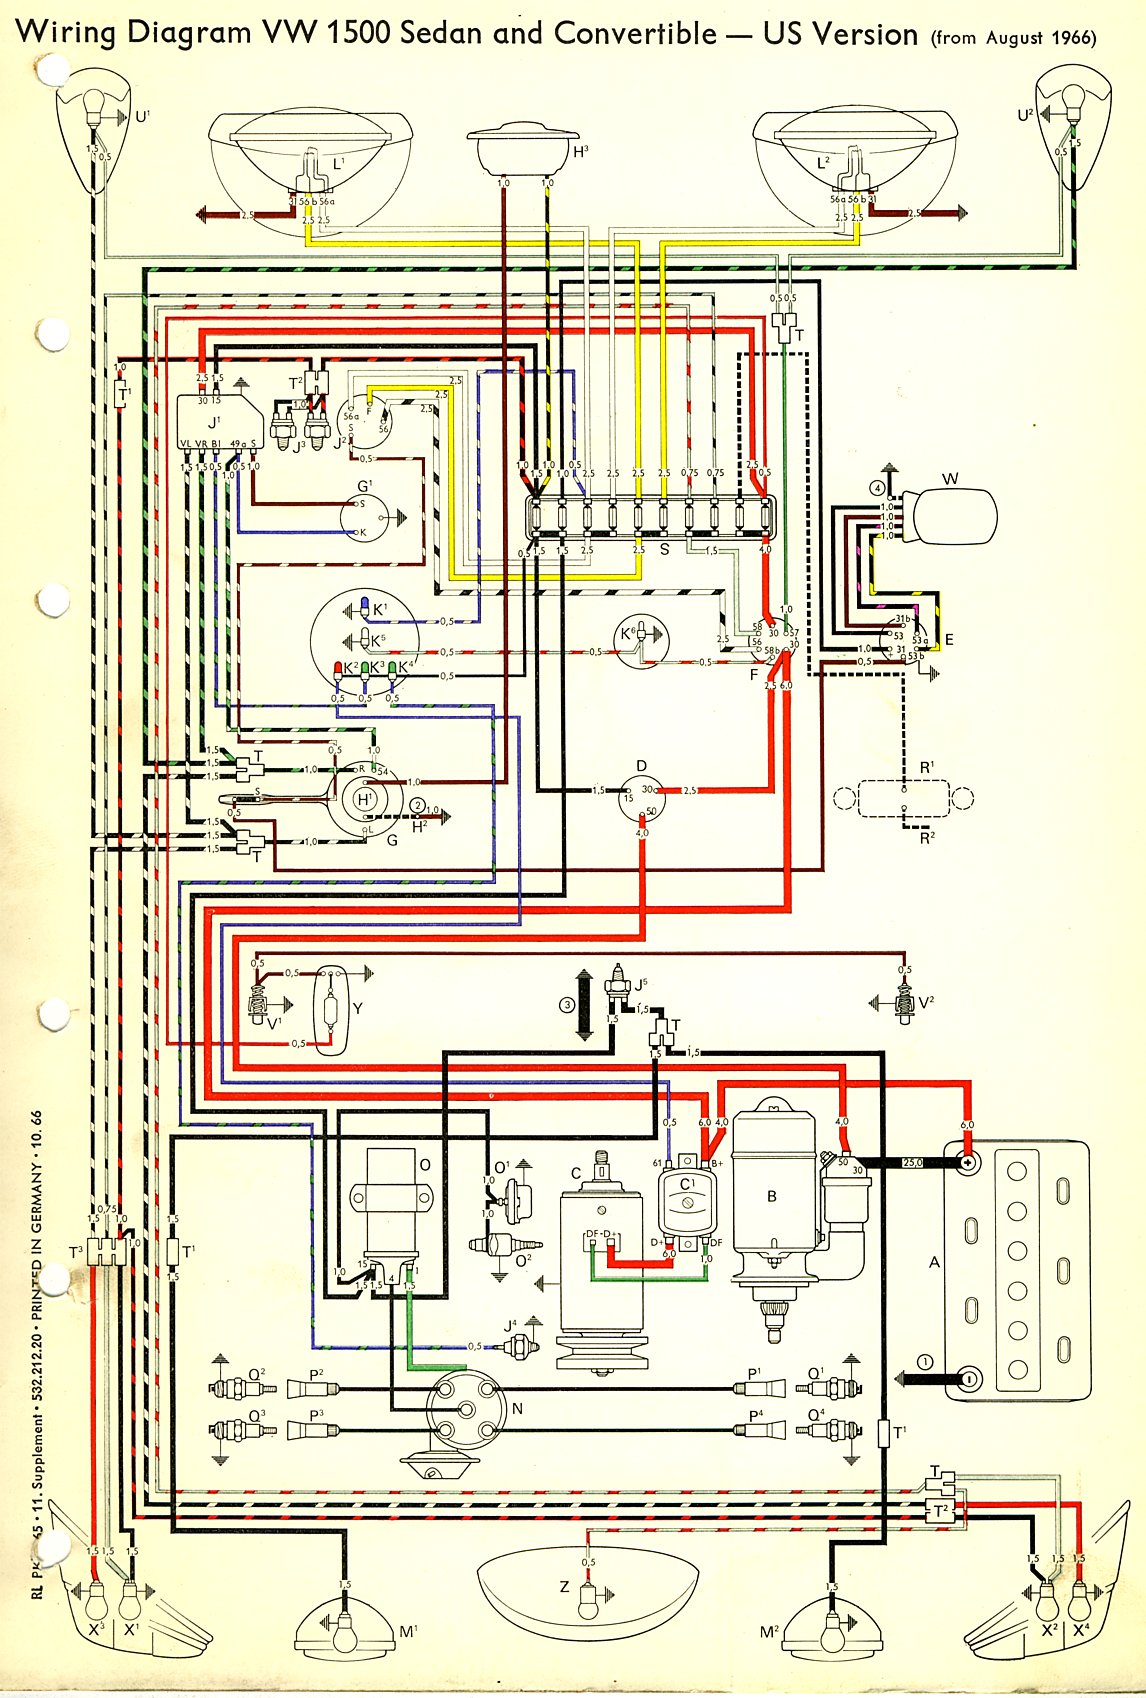 thesamba com type 1 wiring diagrams 69 VW Beetle Wiring Diagram 69 VW Beetle Wiring Diagram